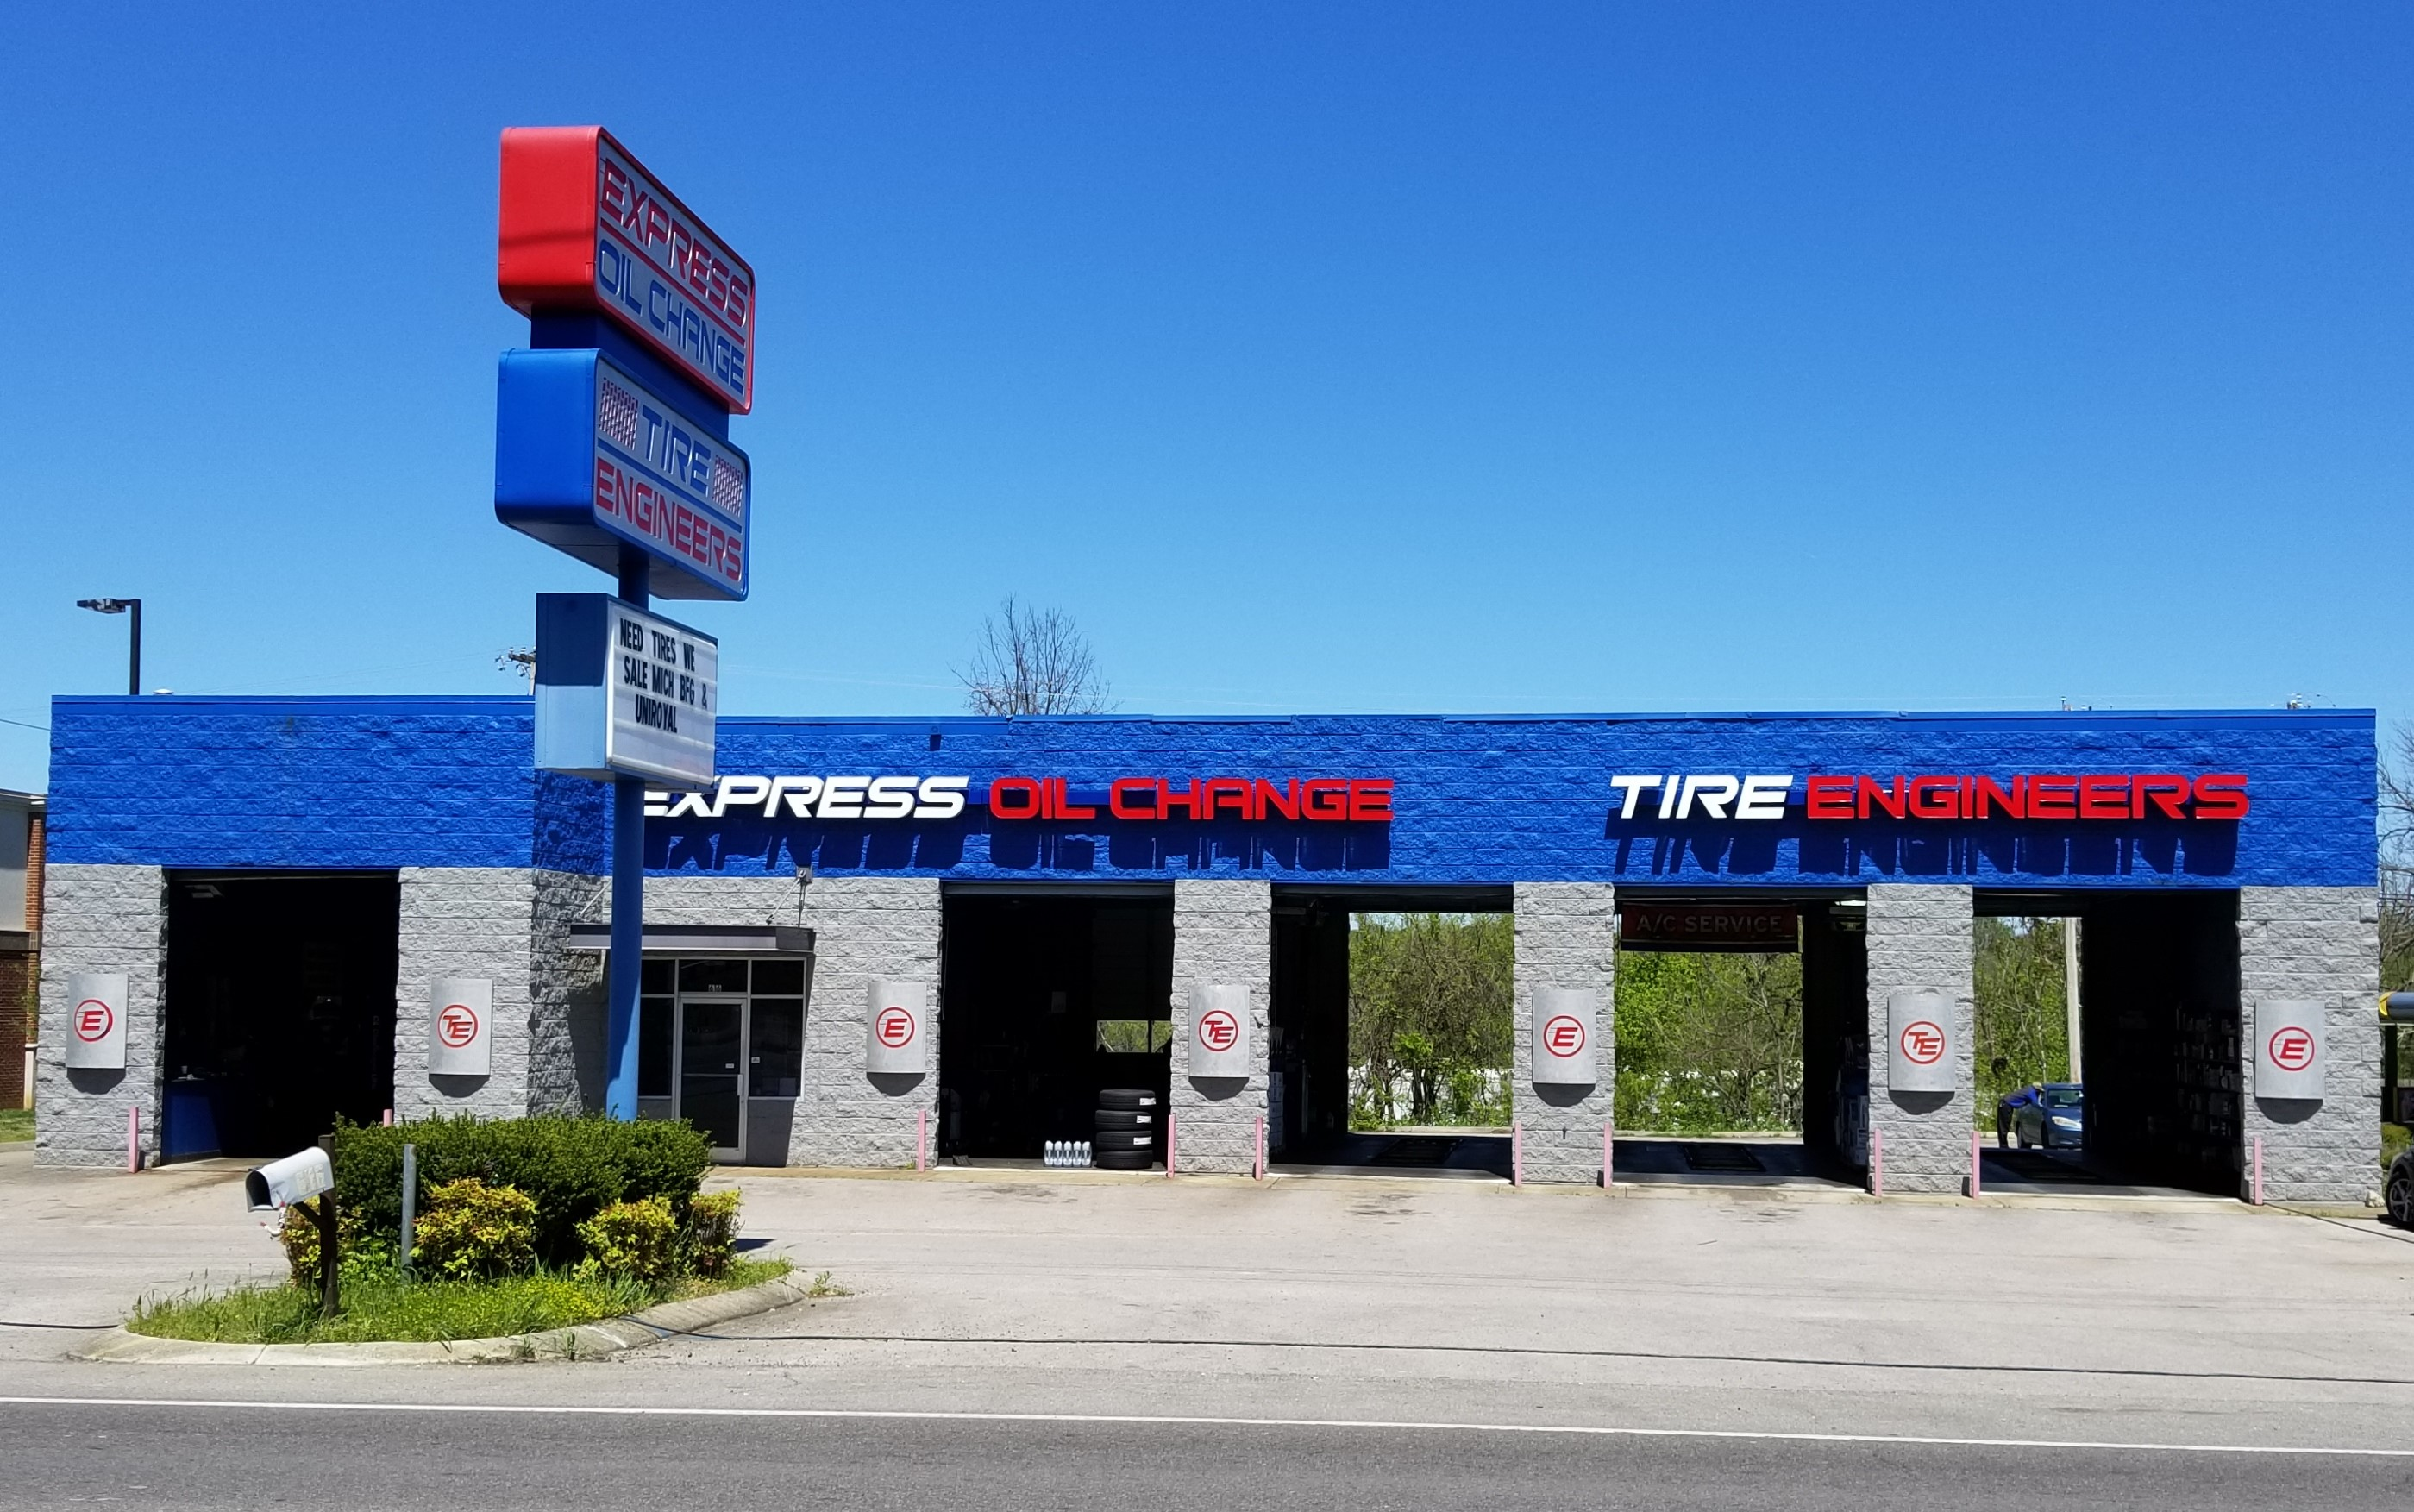 Express Oil Change & Tire Engineers Columbia, TN store